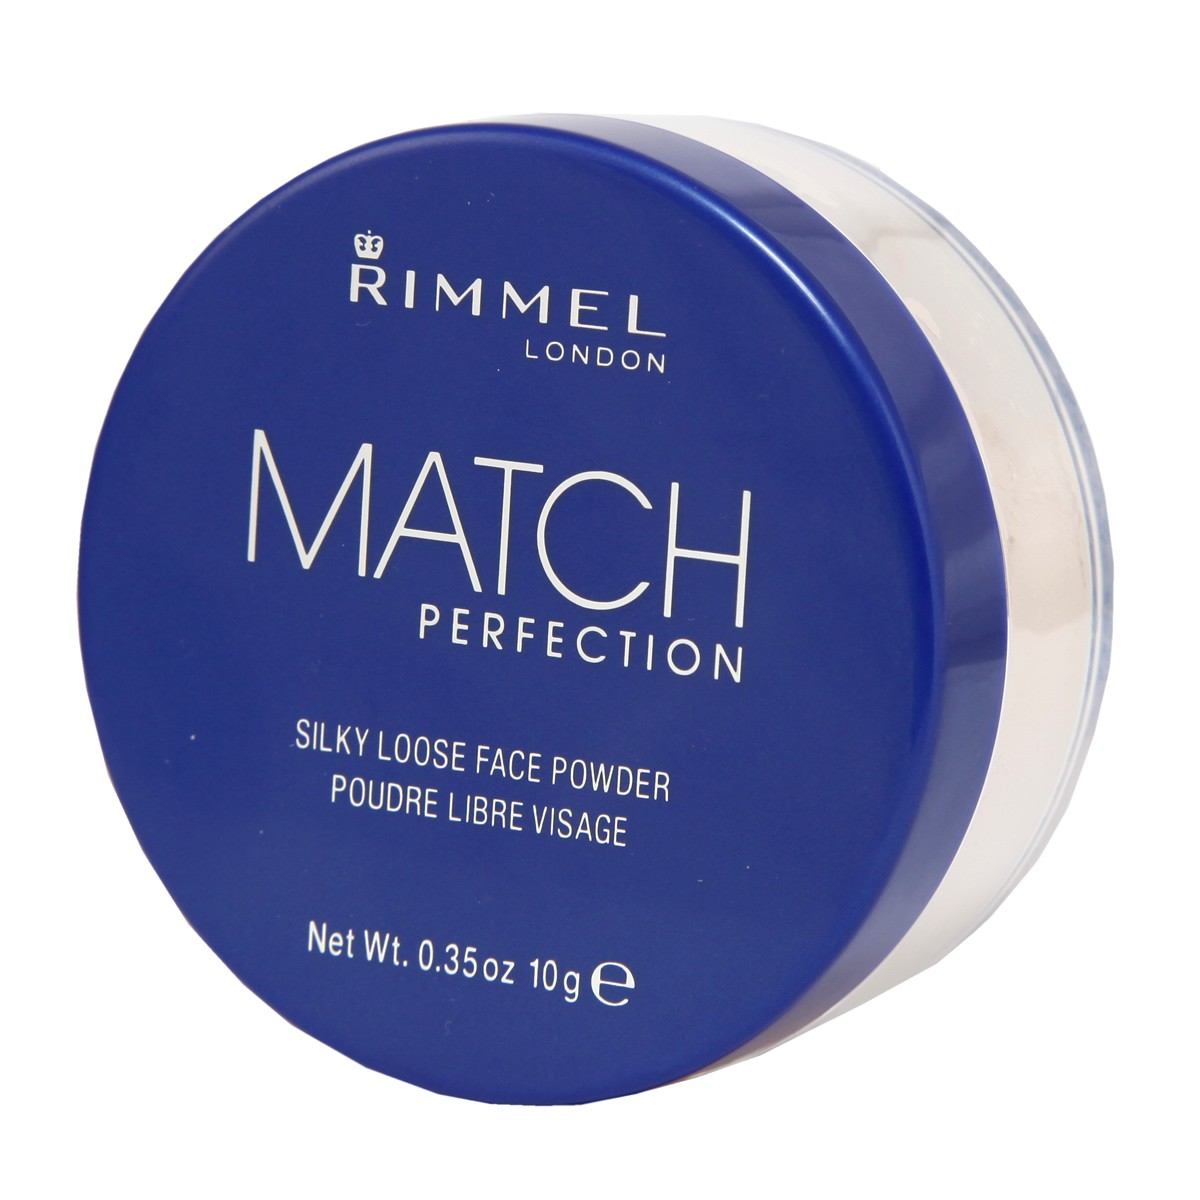 Rimmel Match Perfection Silky Loose Face Powder